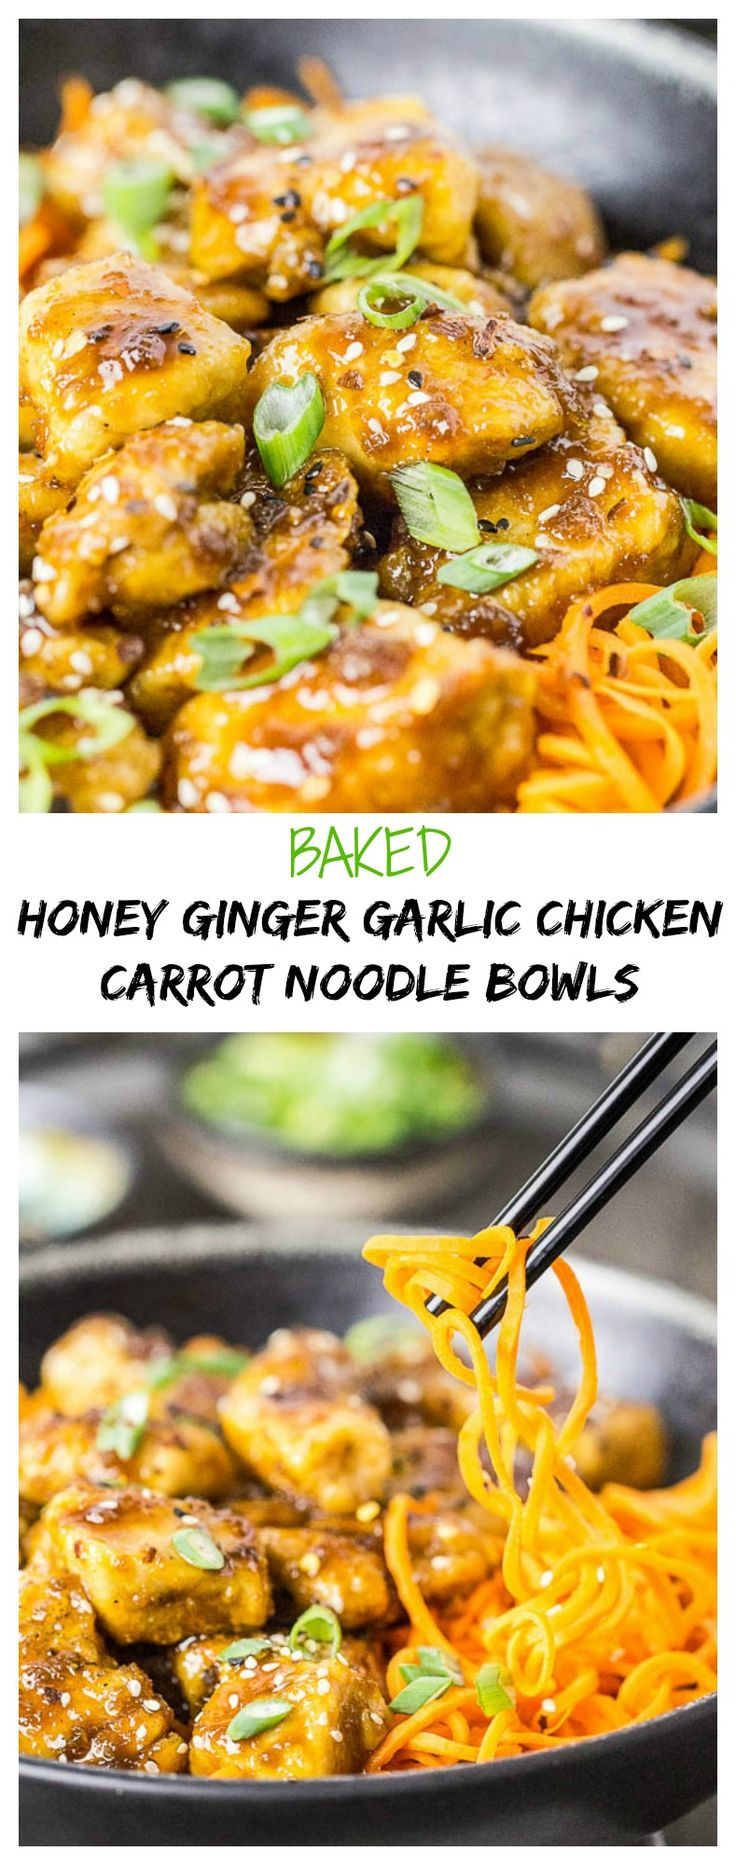 Baked Honey Ginger Garlic Chicken Carrot Noodle Bowls - Healthy Take-out…